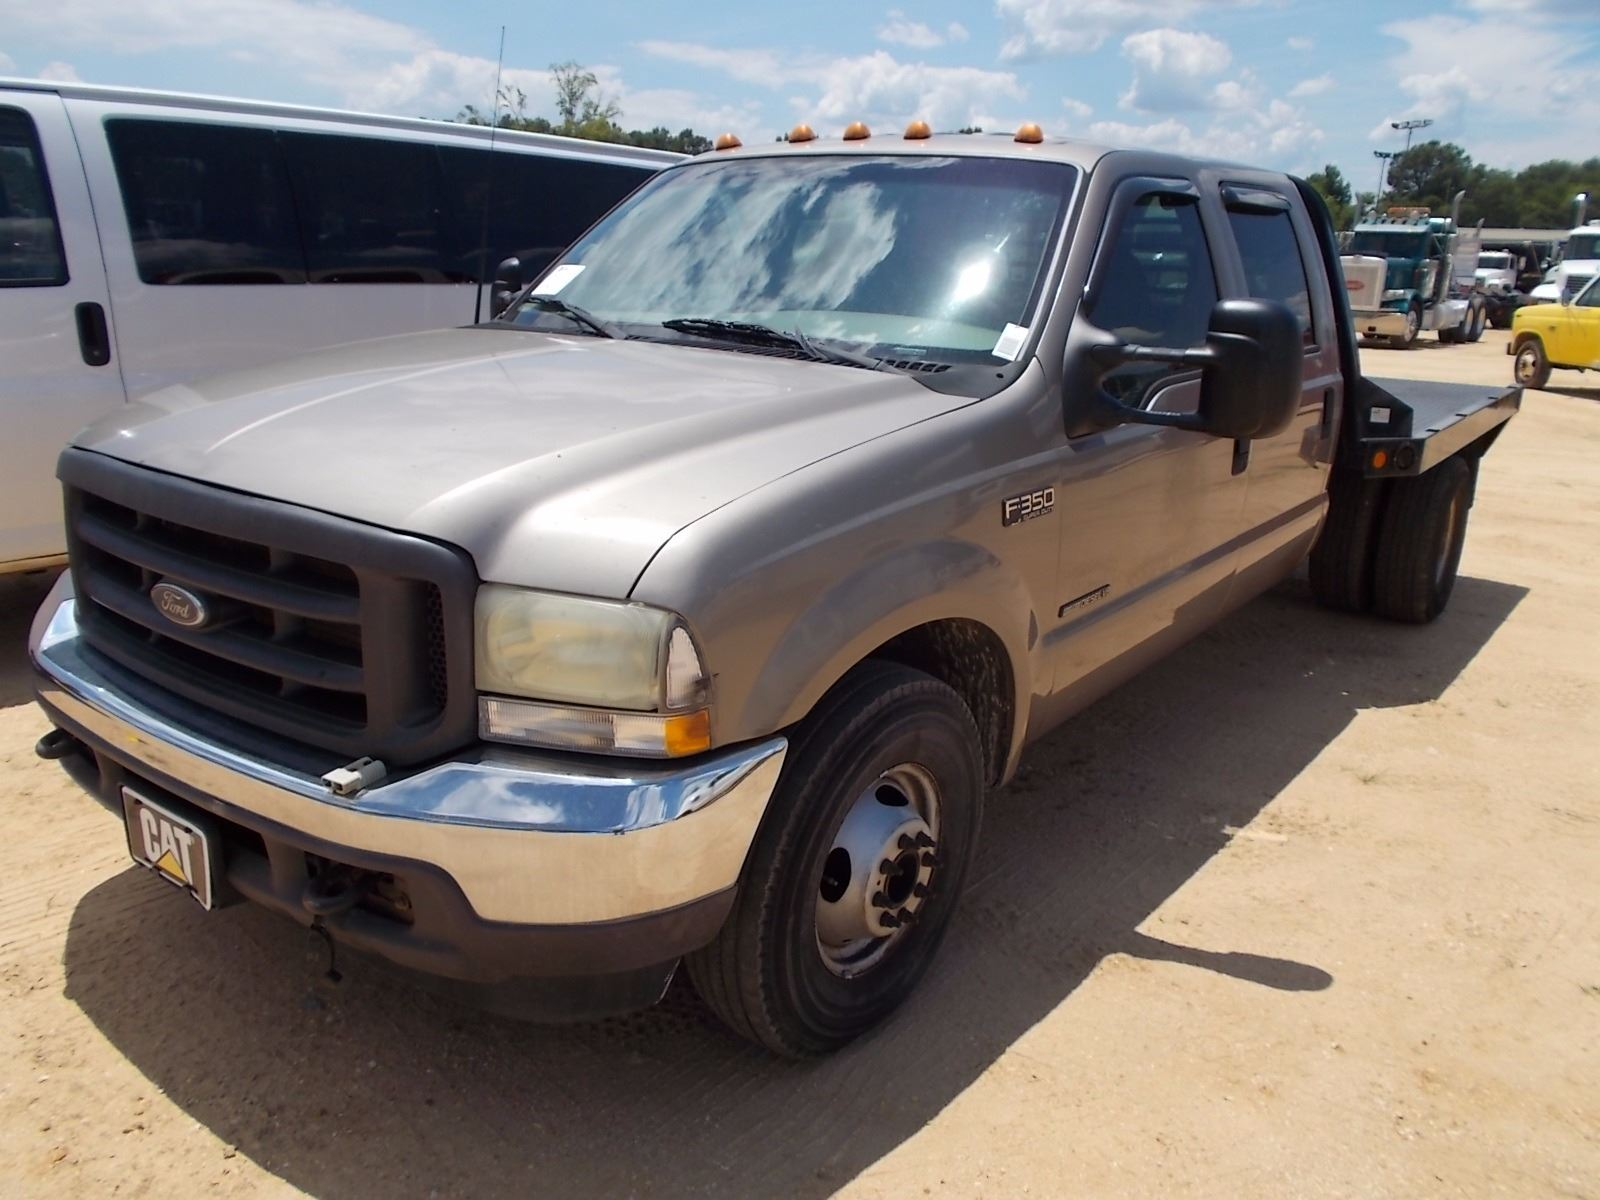 2002 Ford F350 >> 2002 Ford F350 Flatbed Vin Sn 1ftww32f62ea87078 S A Crew Cab 7 3l Power Stroke Diesel A T P S